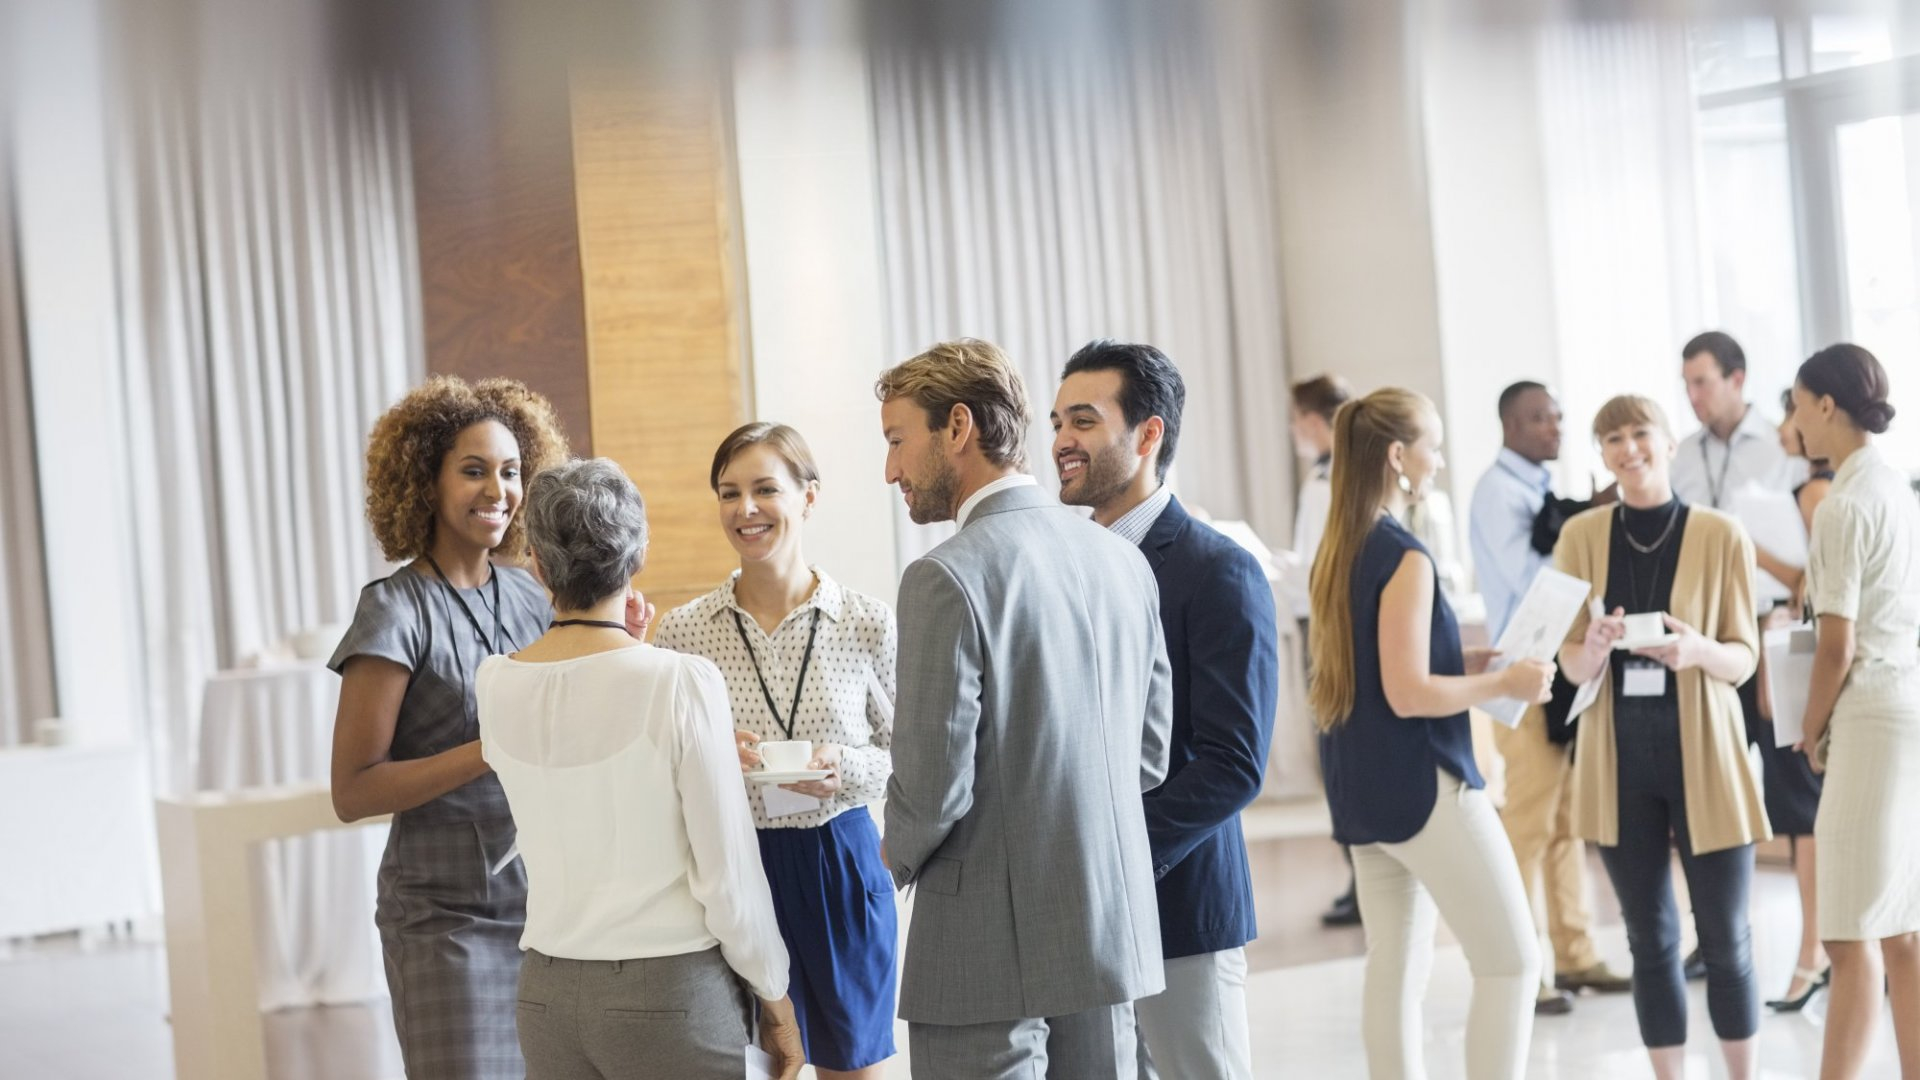 6 Smart Ways to Get More Out of Your Professional Network